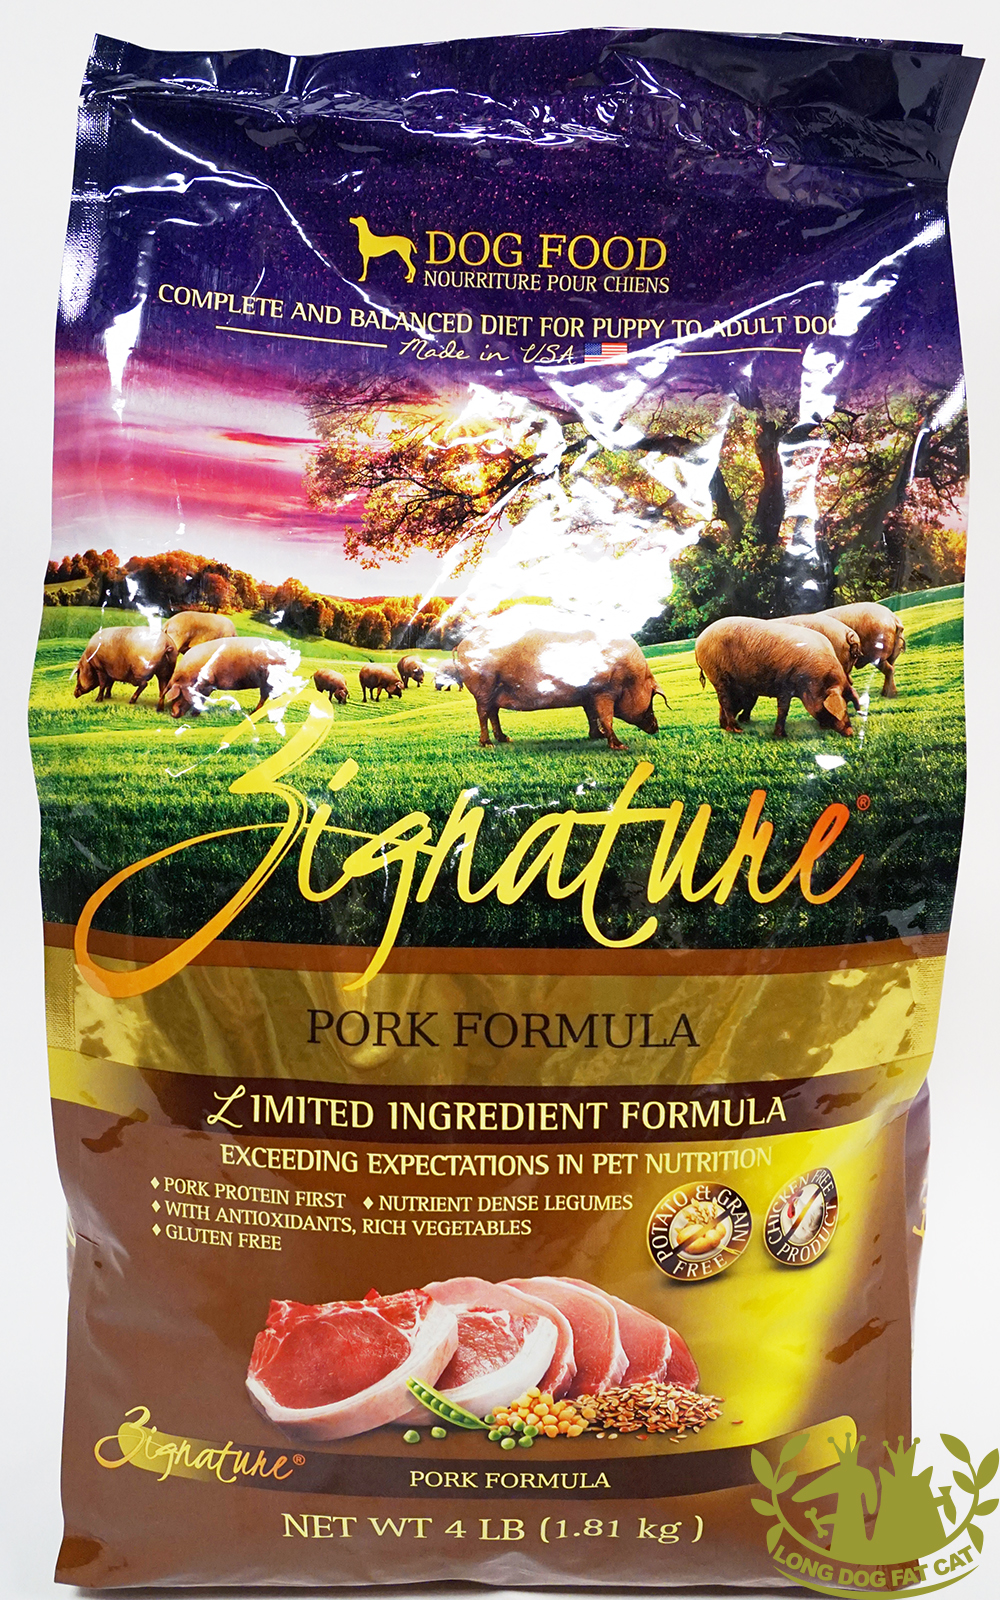 Zignature Canned Dog Food Reviews